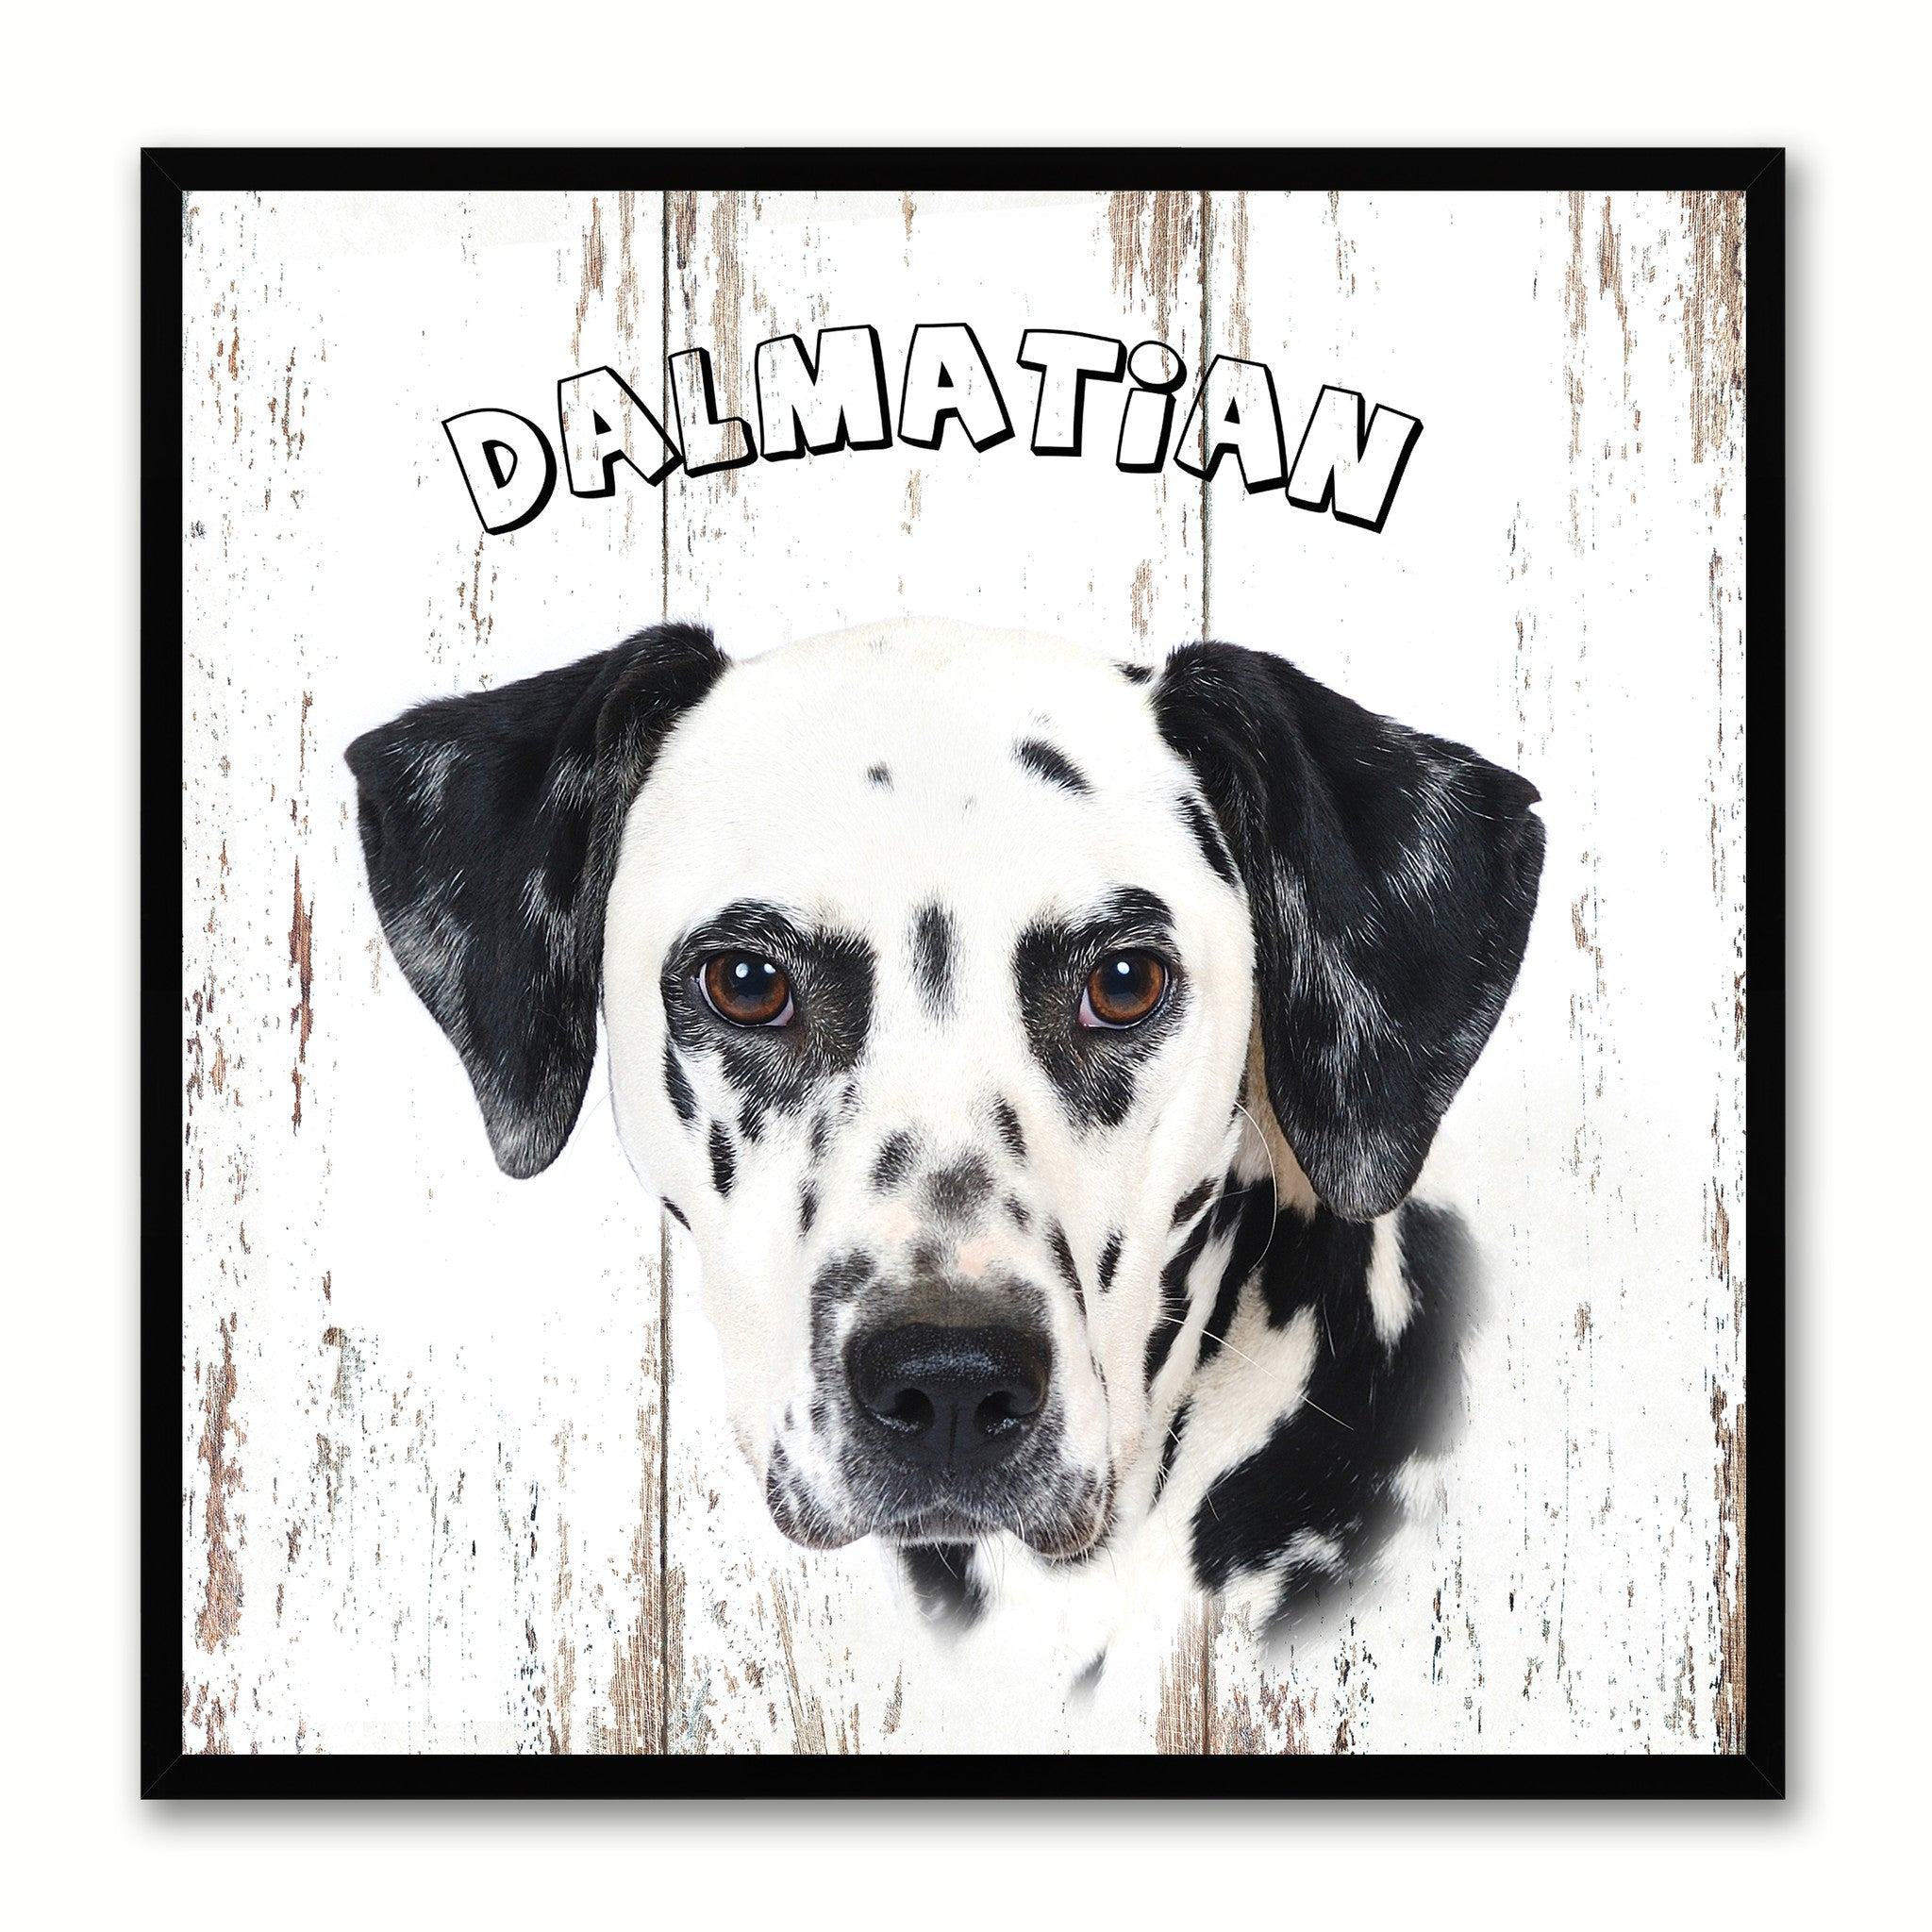 Dalmatian Dog Canvas Print Picture Frame Gift Home Decor Wall Art Decoration